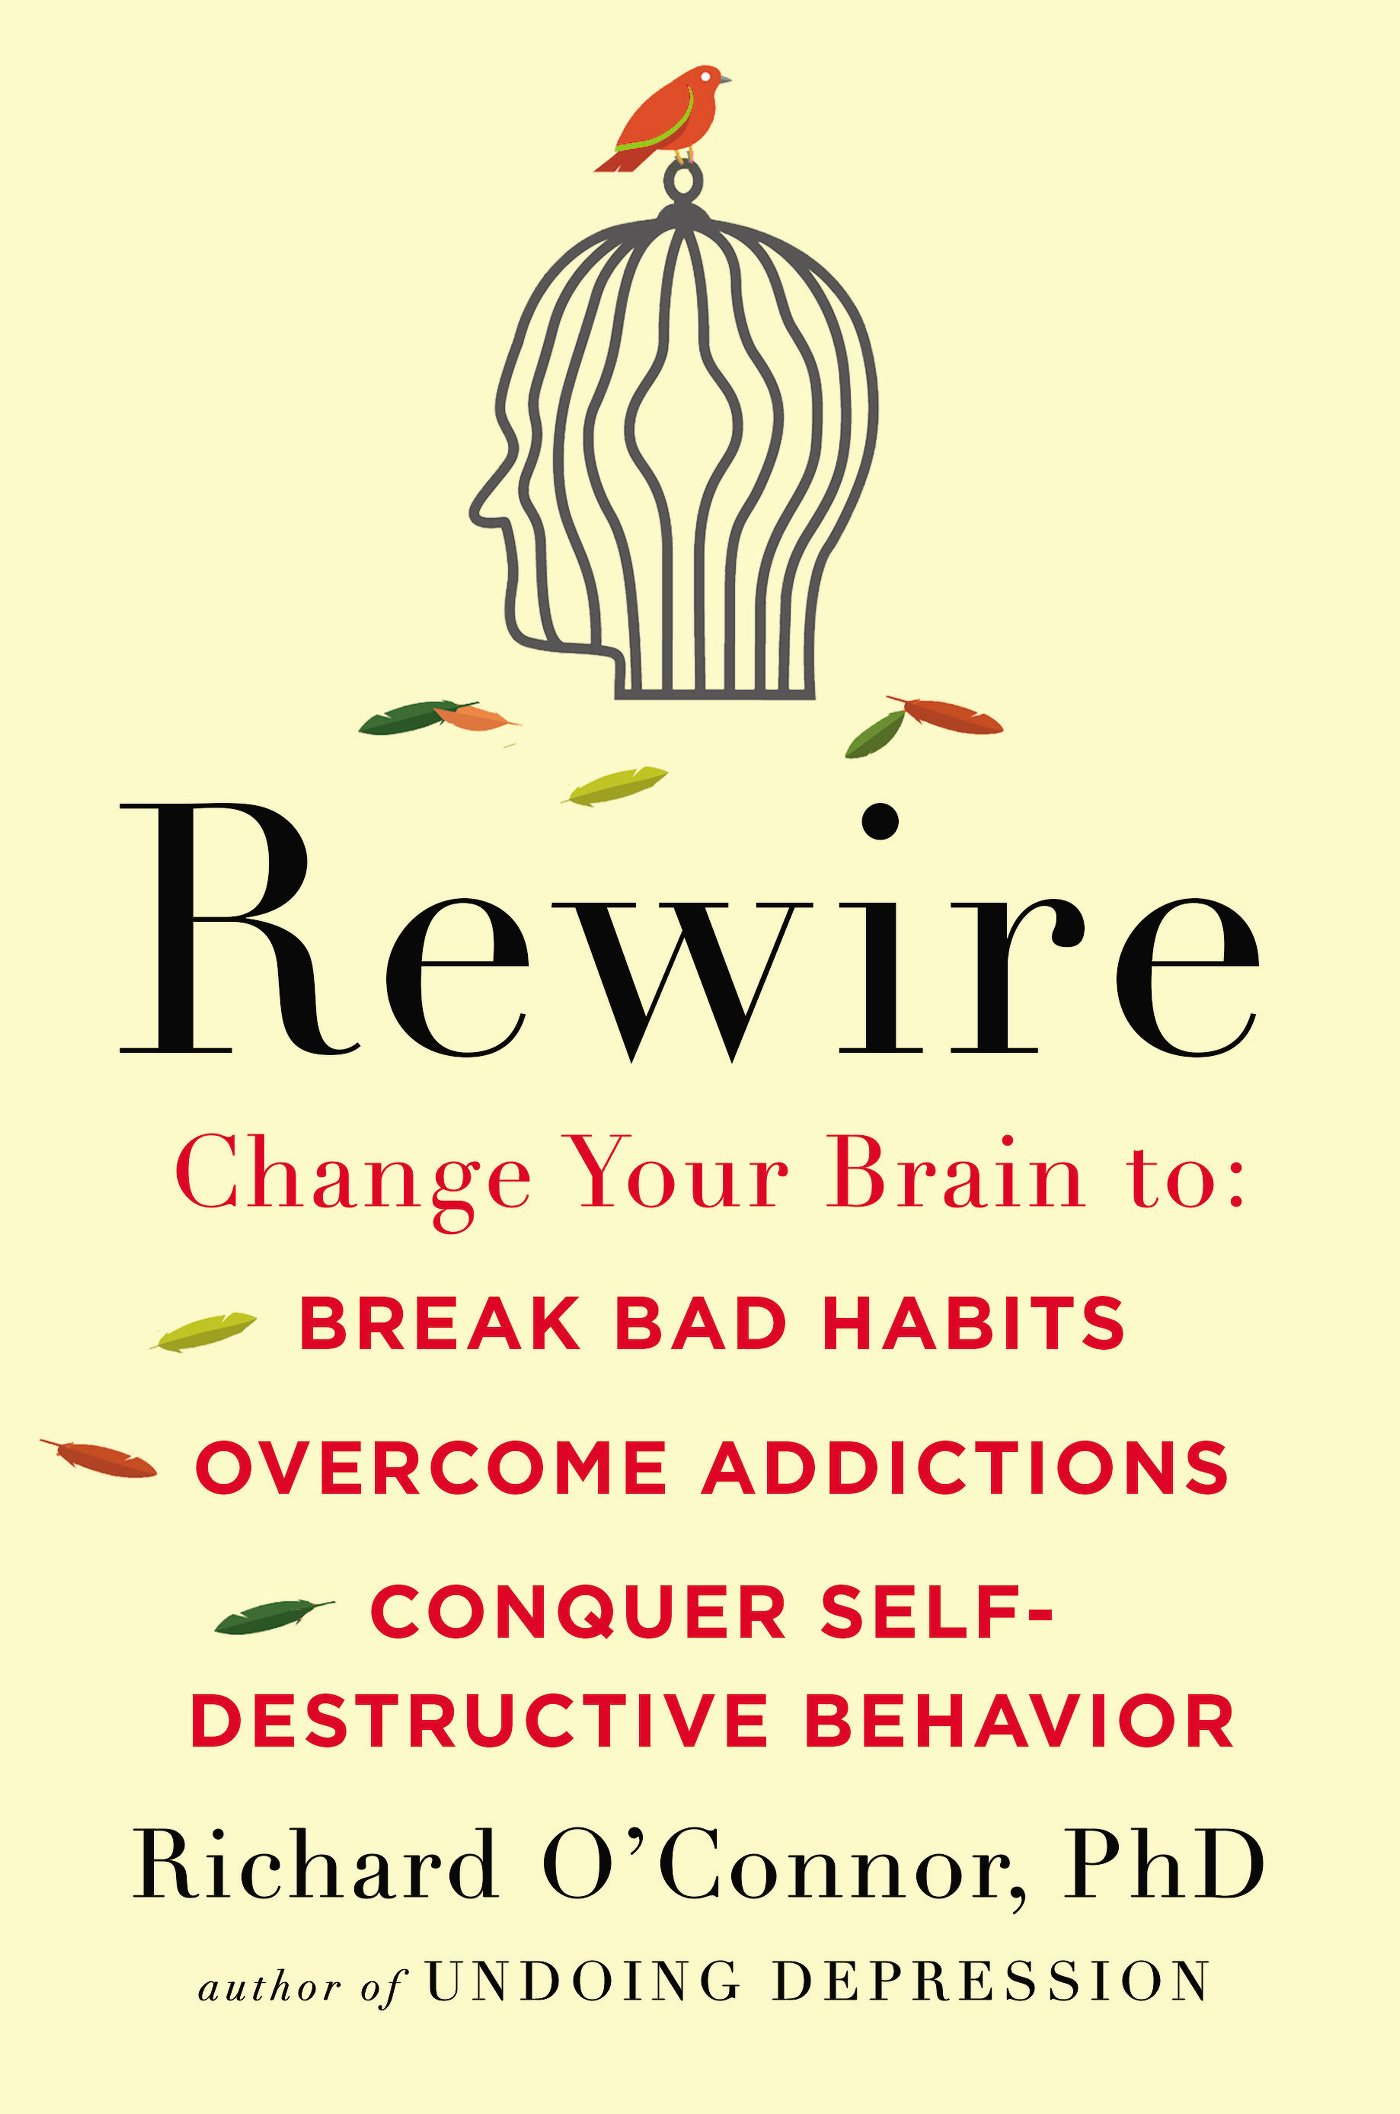 Download Rewire Change Your Brain To Break Bad Habits